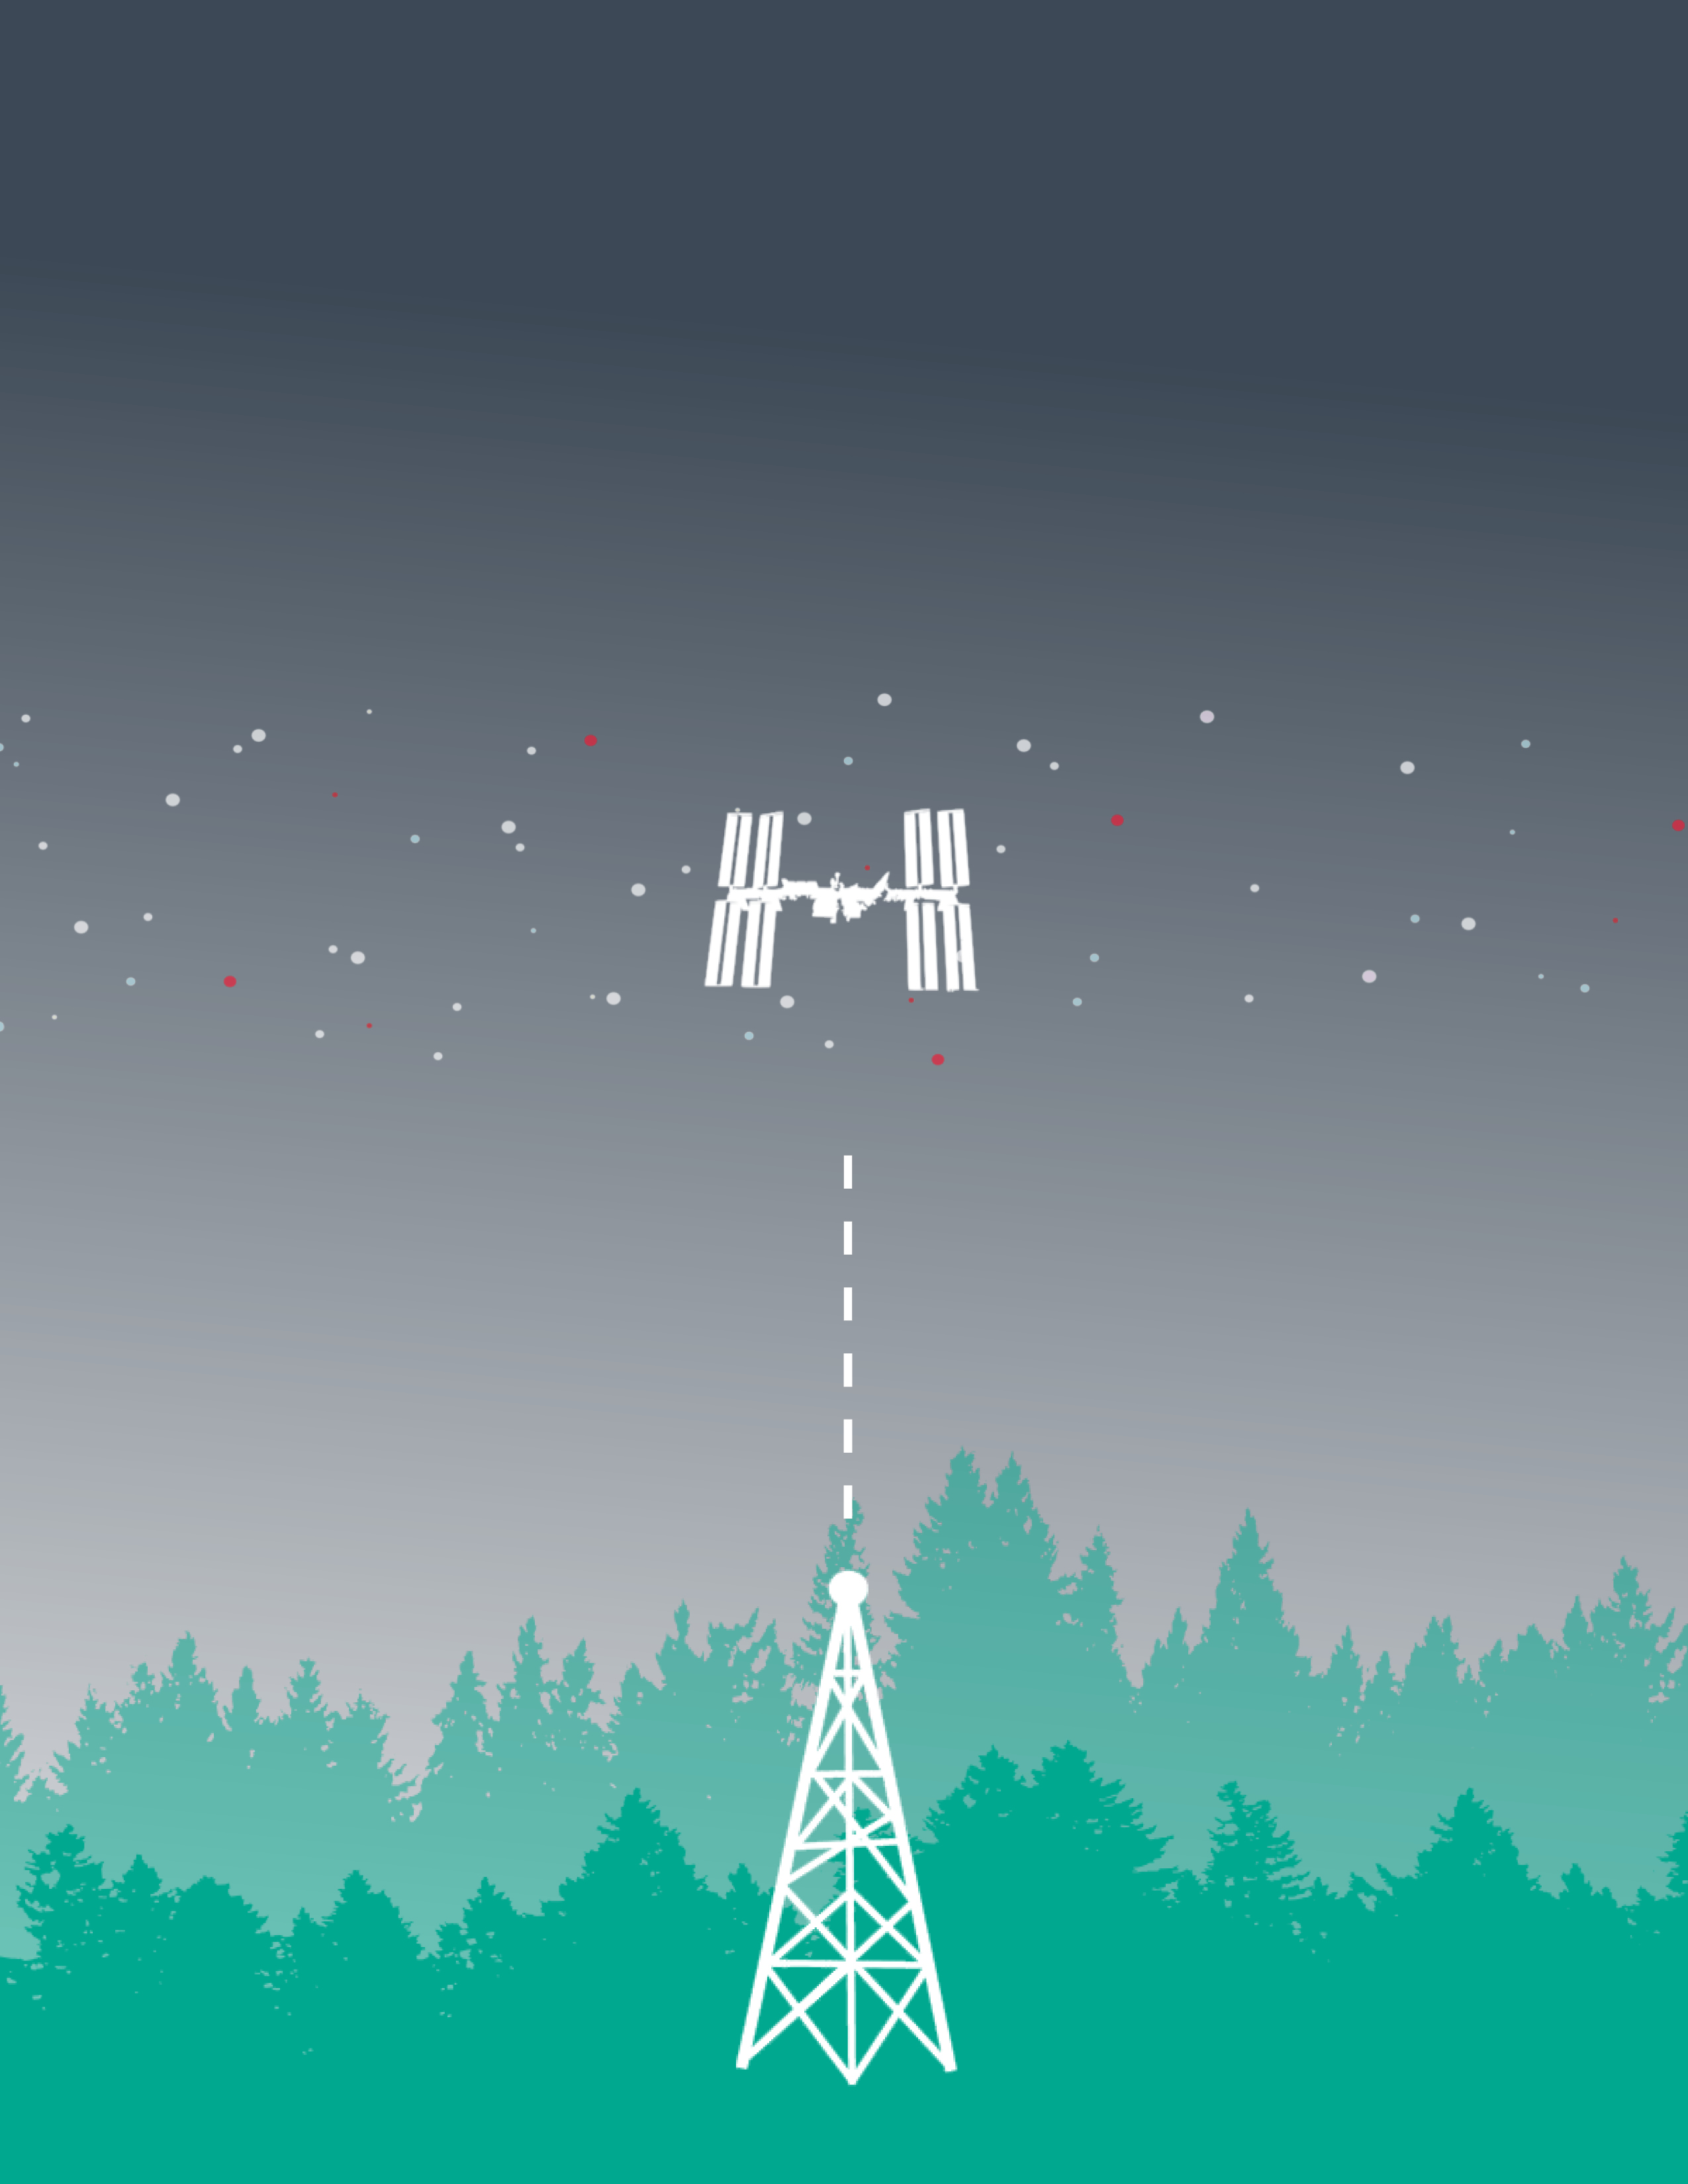 graphic of radio tower and space station